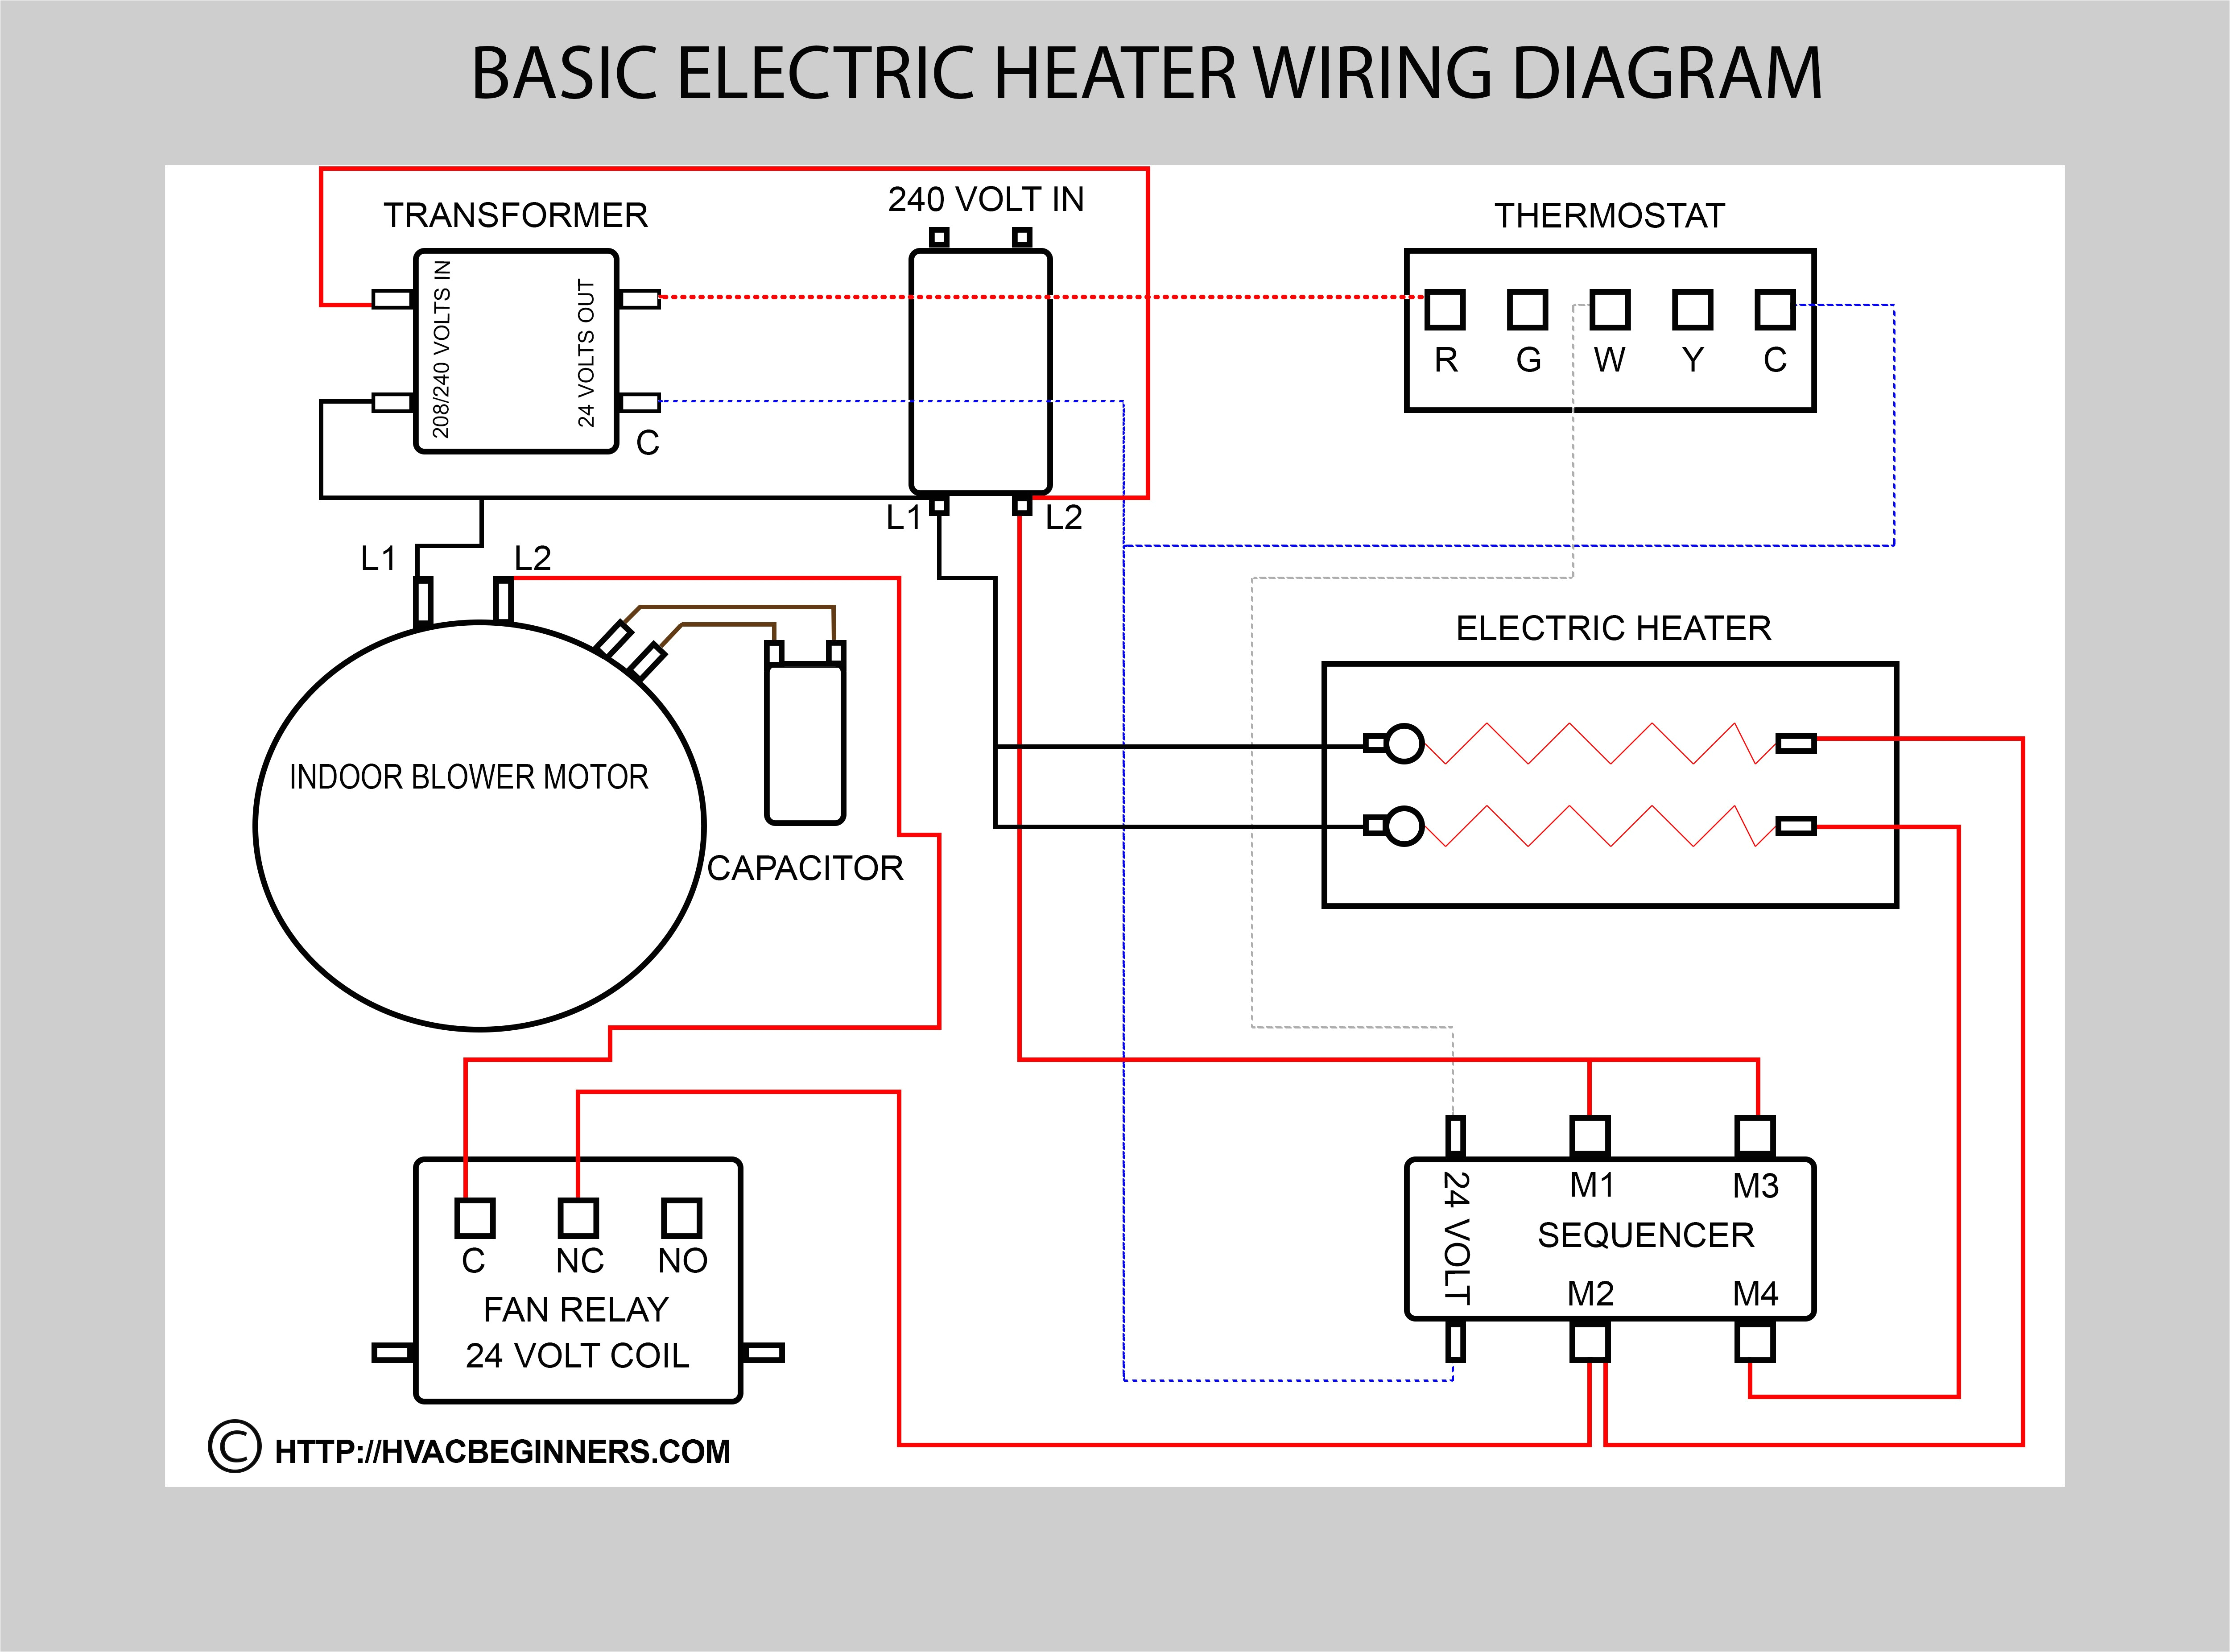 coleman furnace thermostat wiring diagram free download wiring electric furnace thermostat wiring diagram free picture wiring